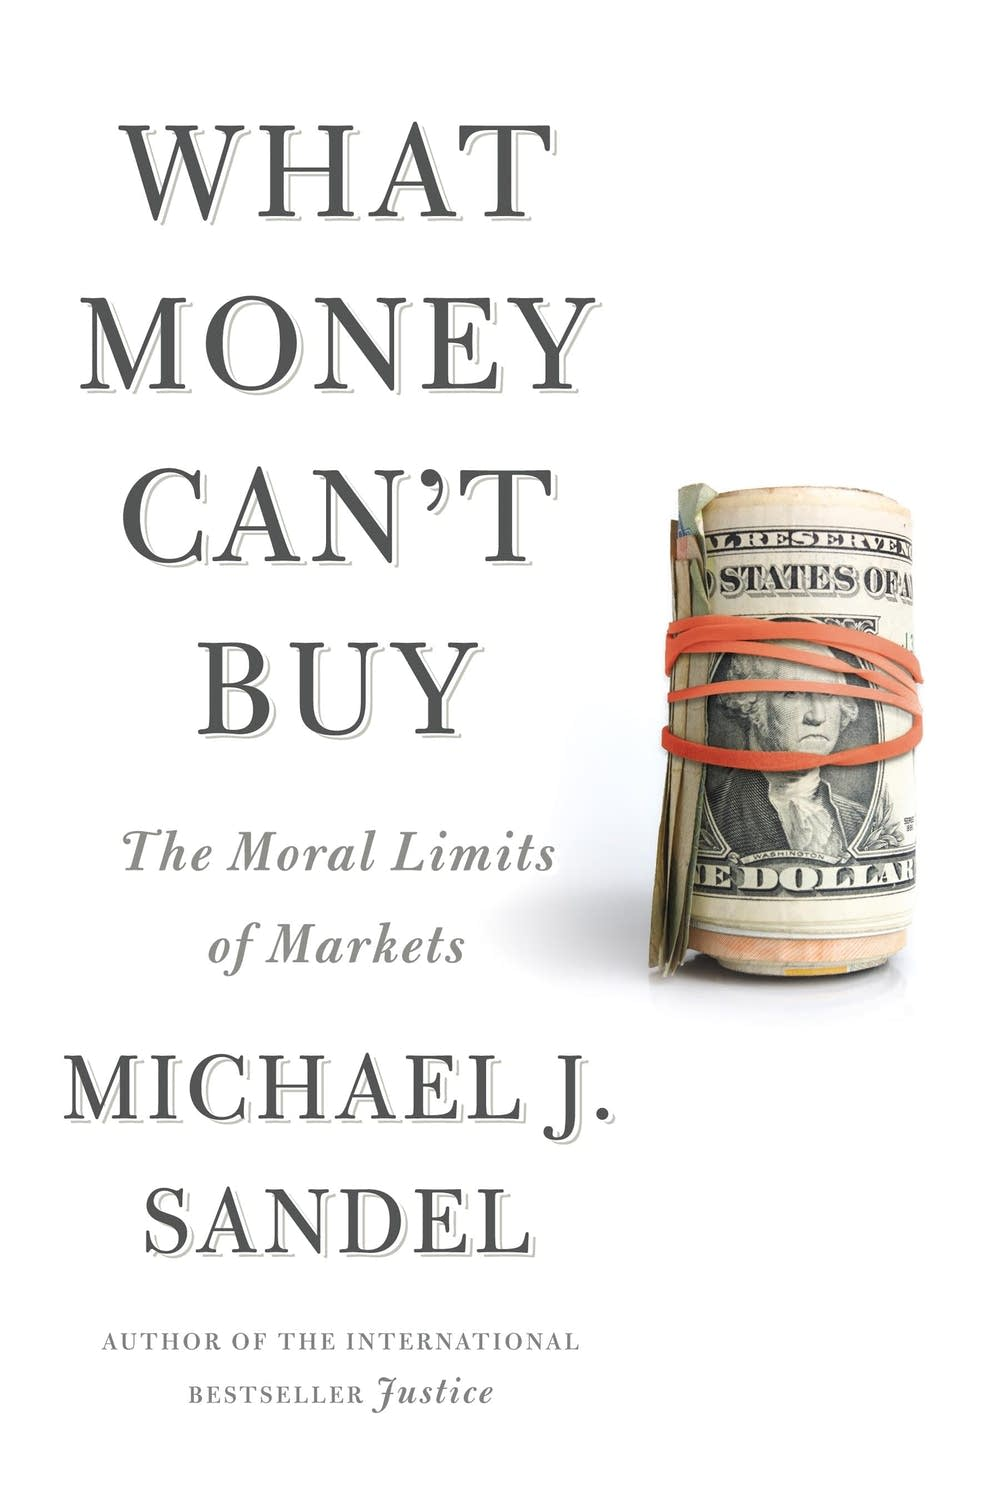 'What Money Can't Buy' by Michael Sandel